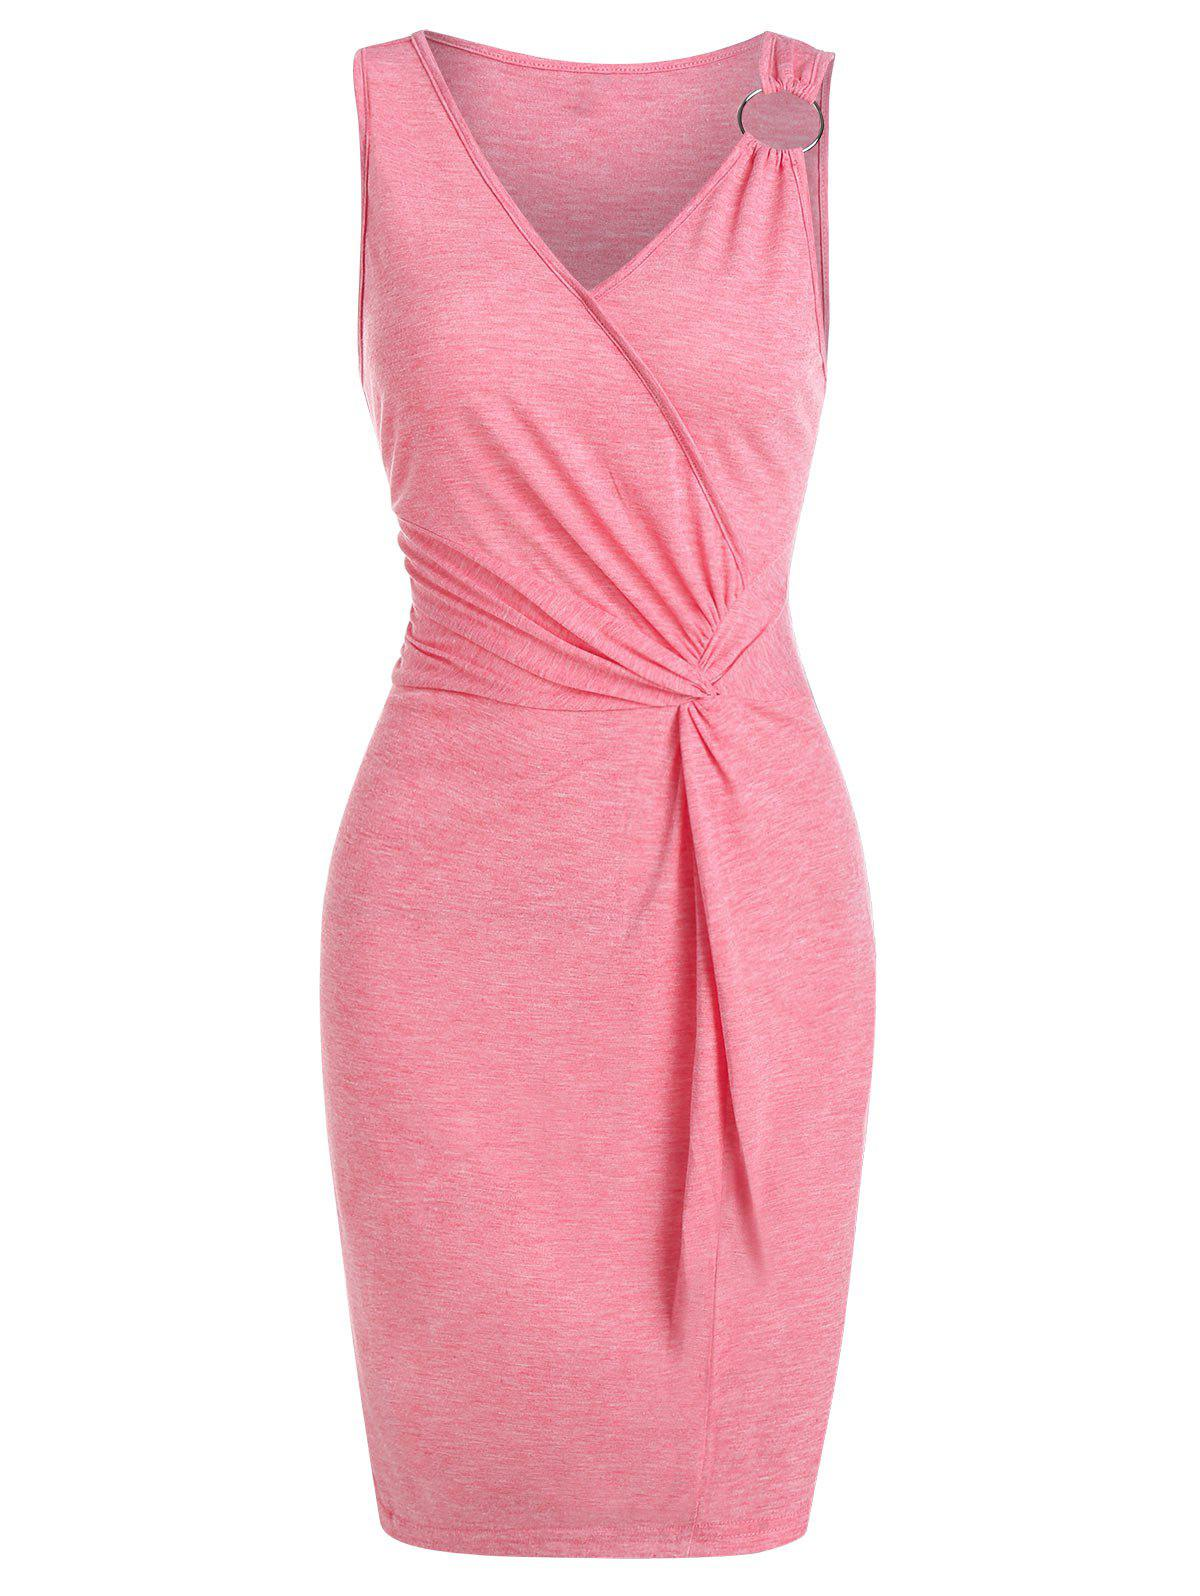 Twist Front O-ring Sleeveless Heathered Bodycon Dress - FLAMINGO PINK 3XL